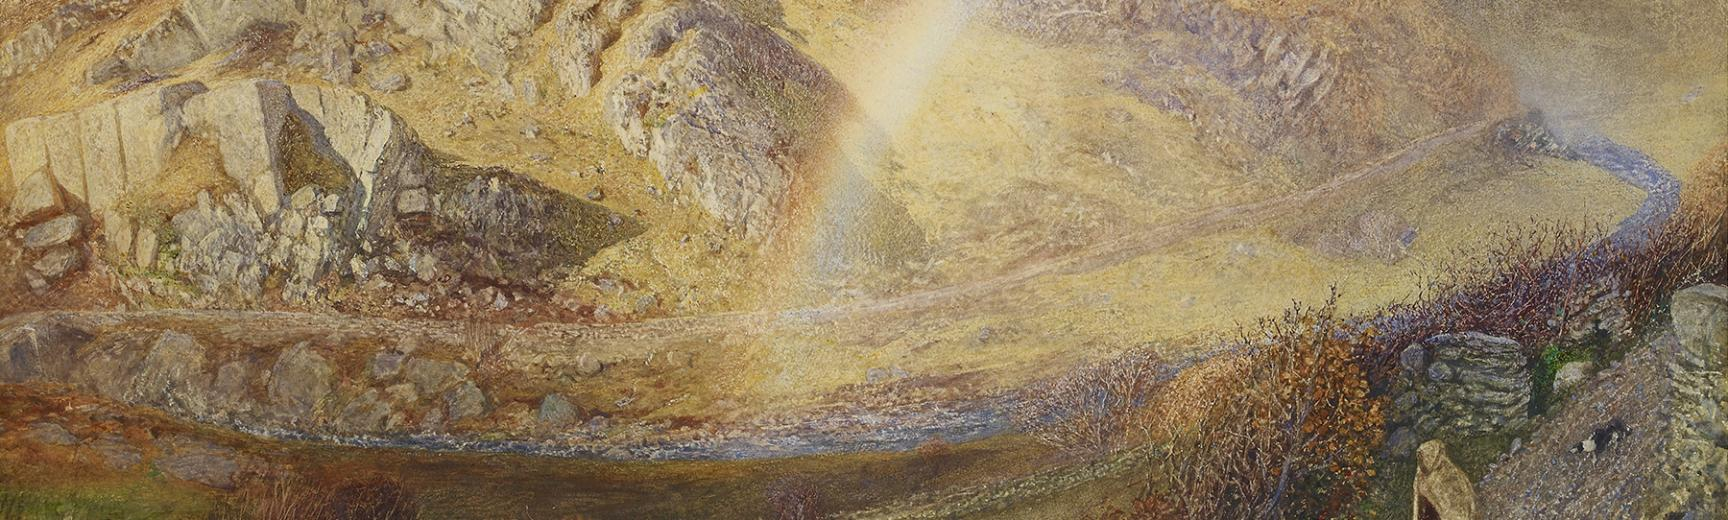 A W Hunt - Rainbow, Dolwyddelan Valley at the Ashmolean Museum